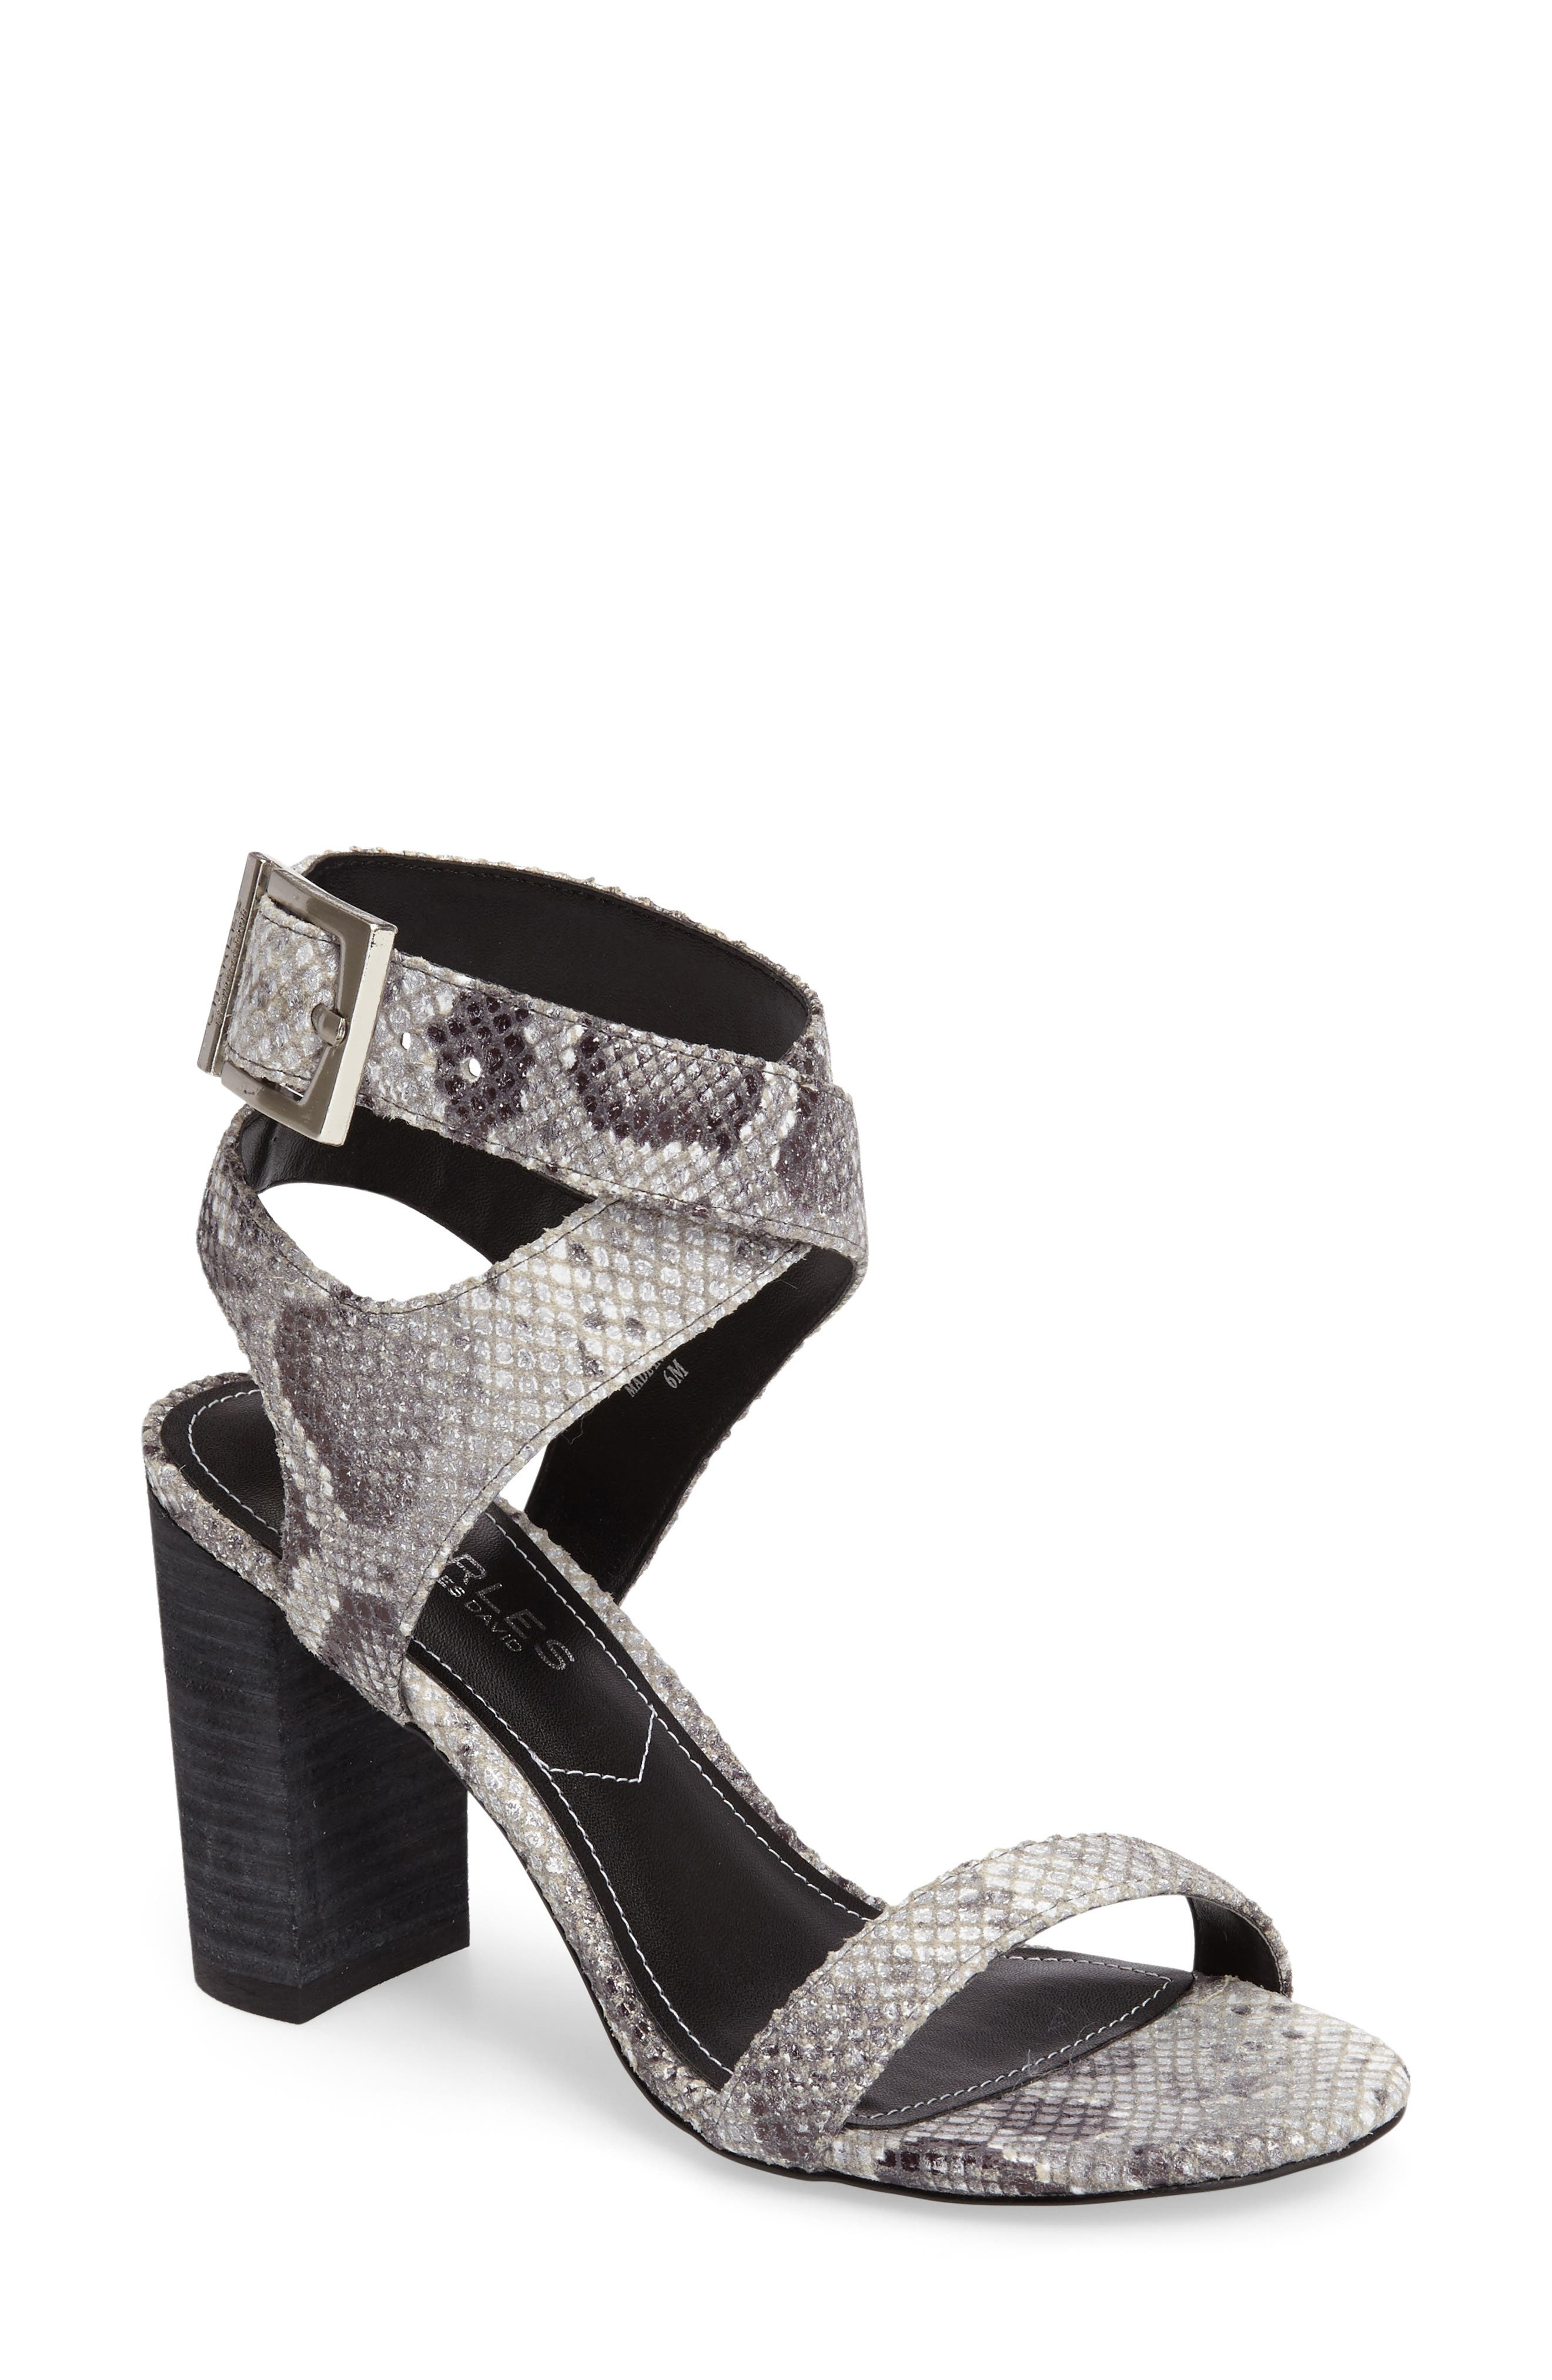 Main Image - Charles by Charles David Eddie Sandal (Women)